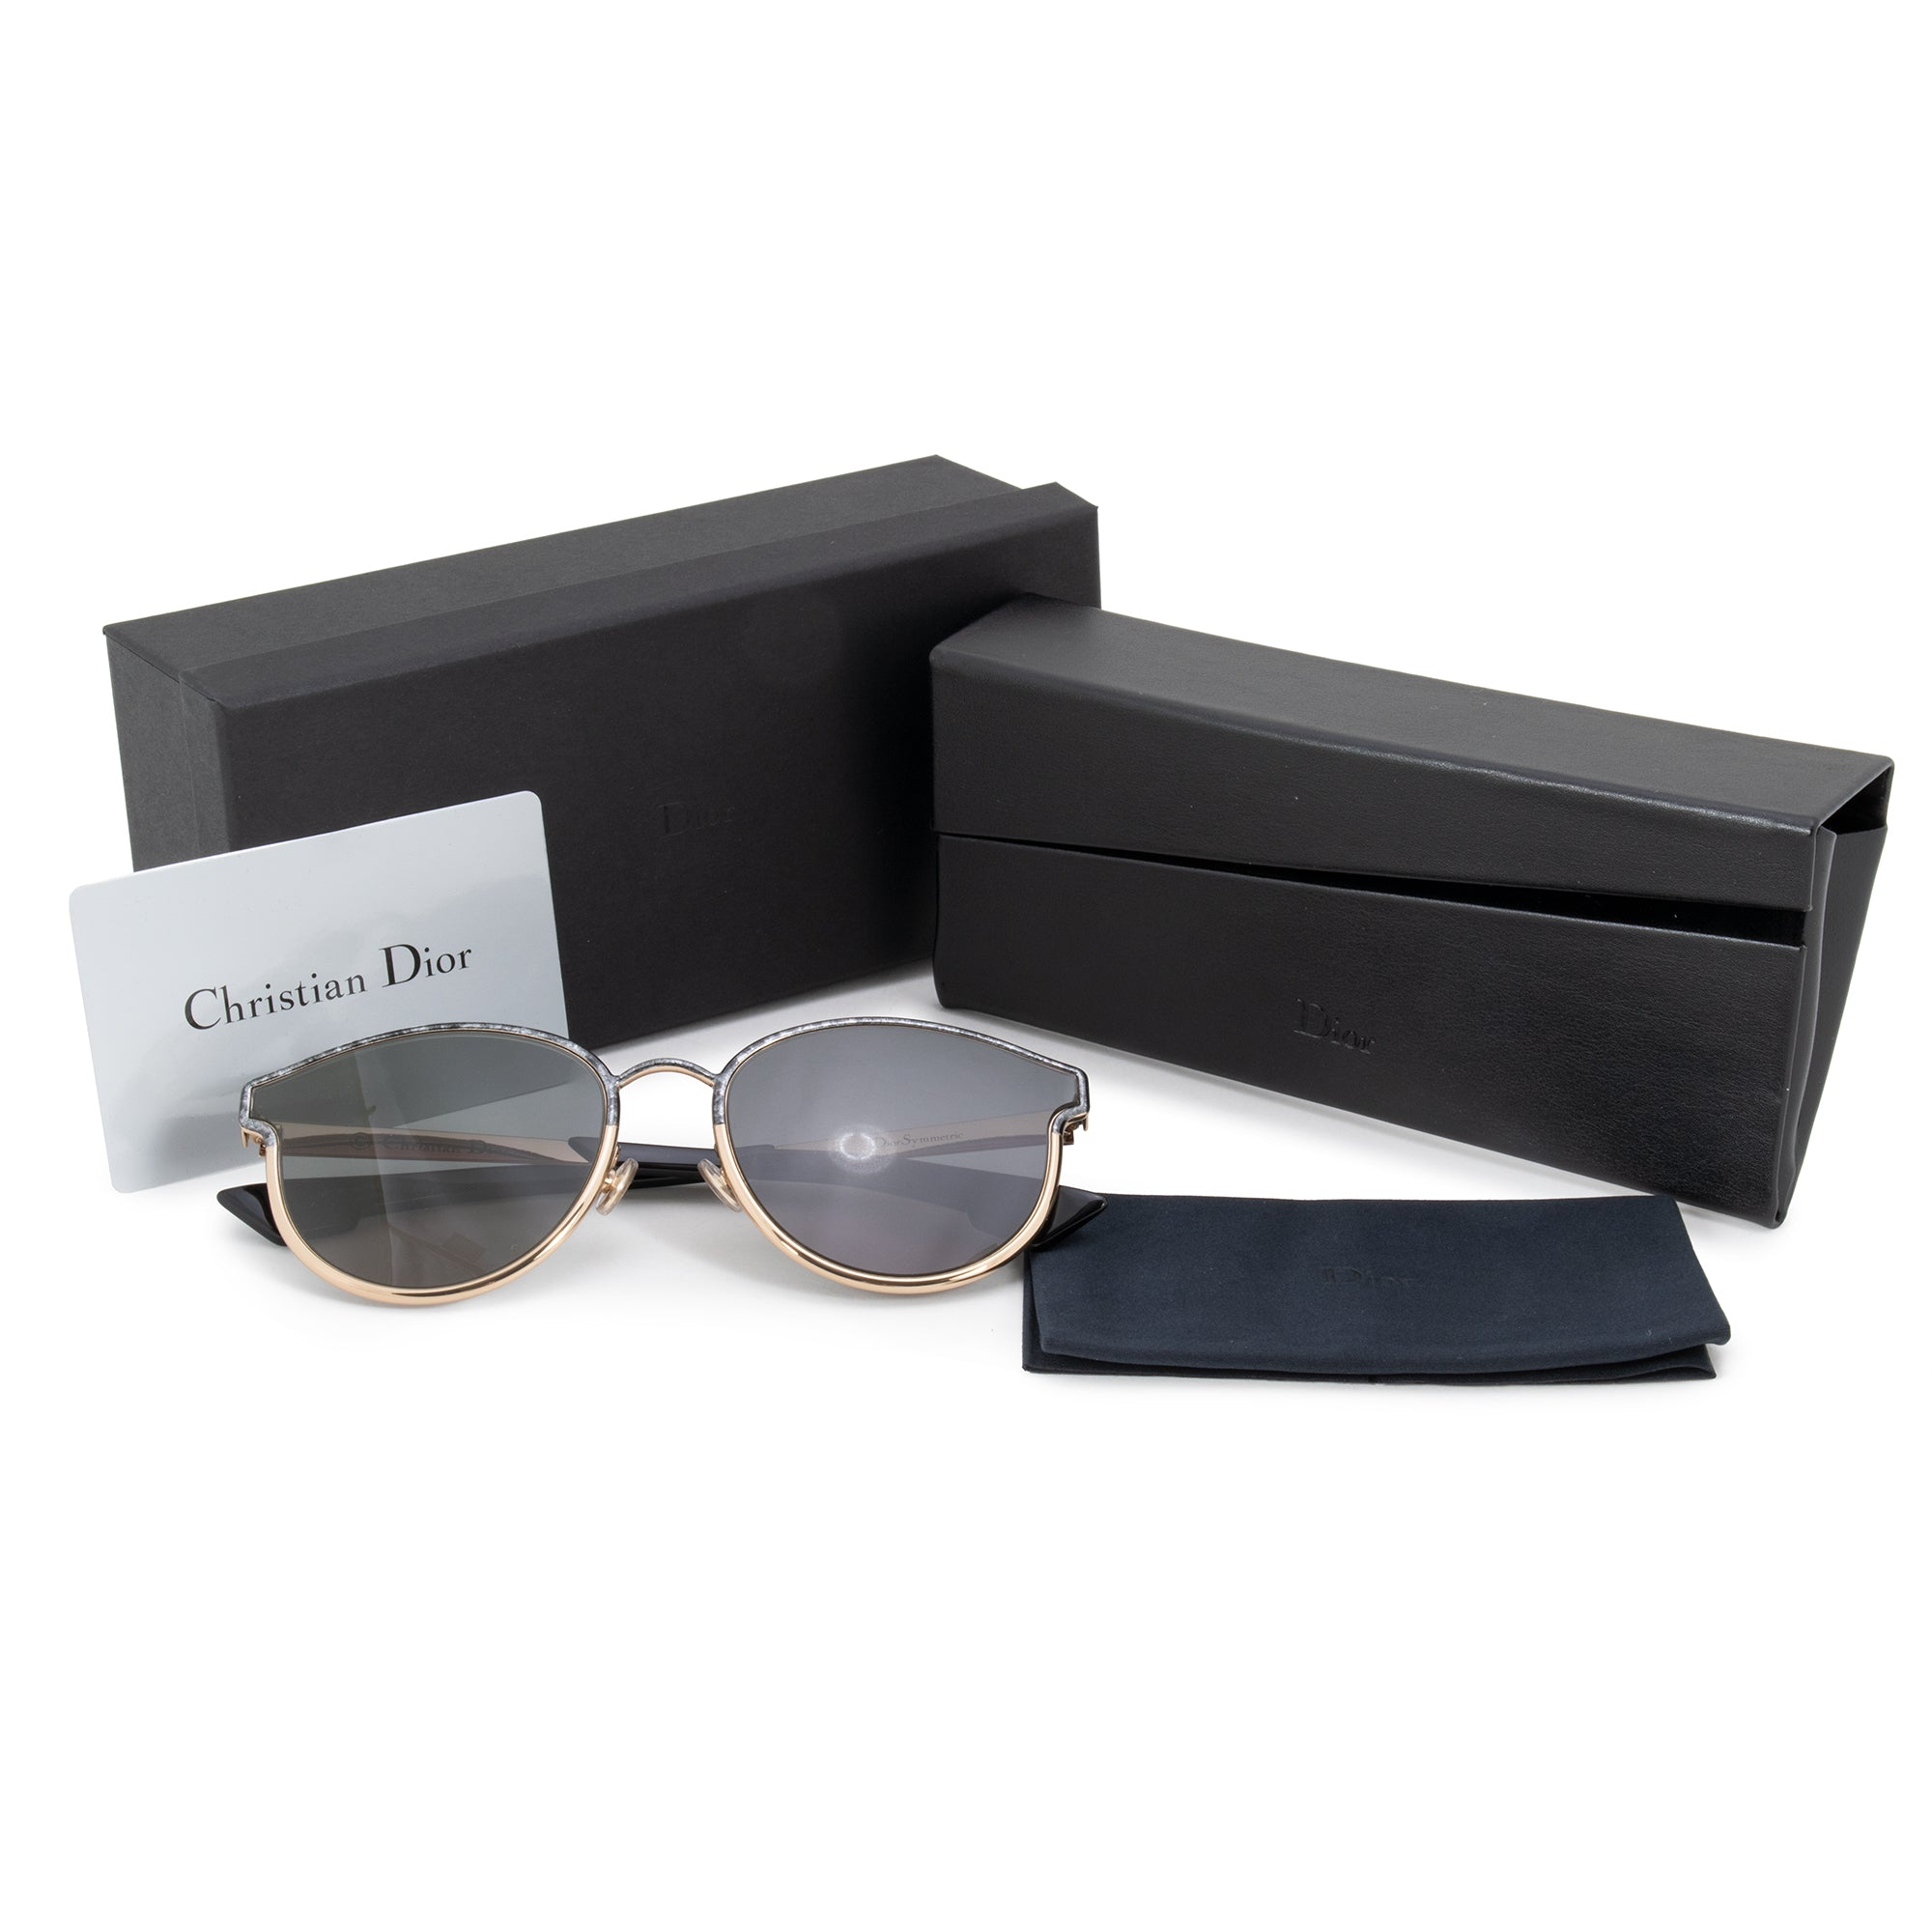 Christian Dior Symmetric Round Sunglasses GBY2K 59